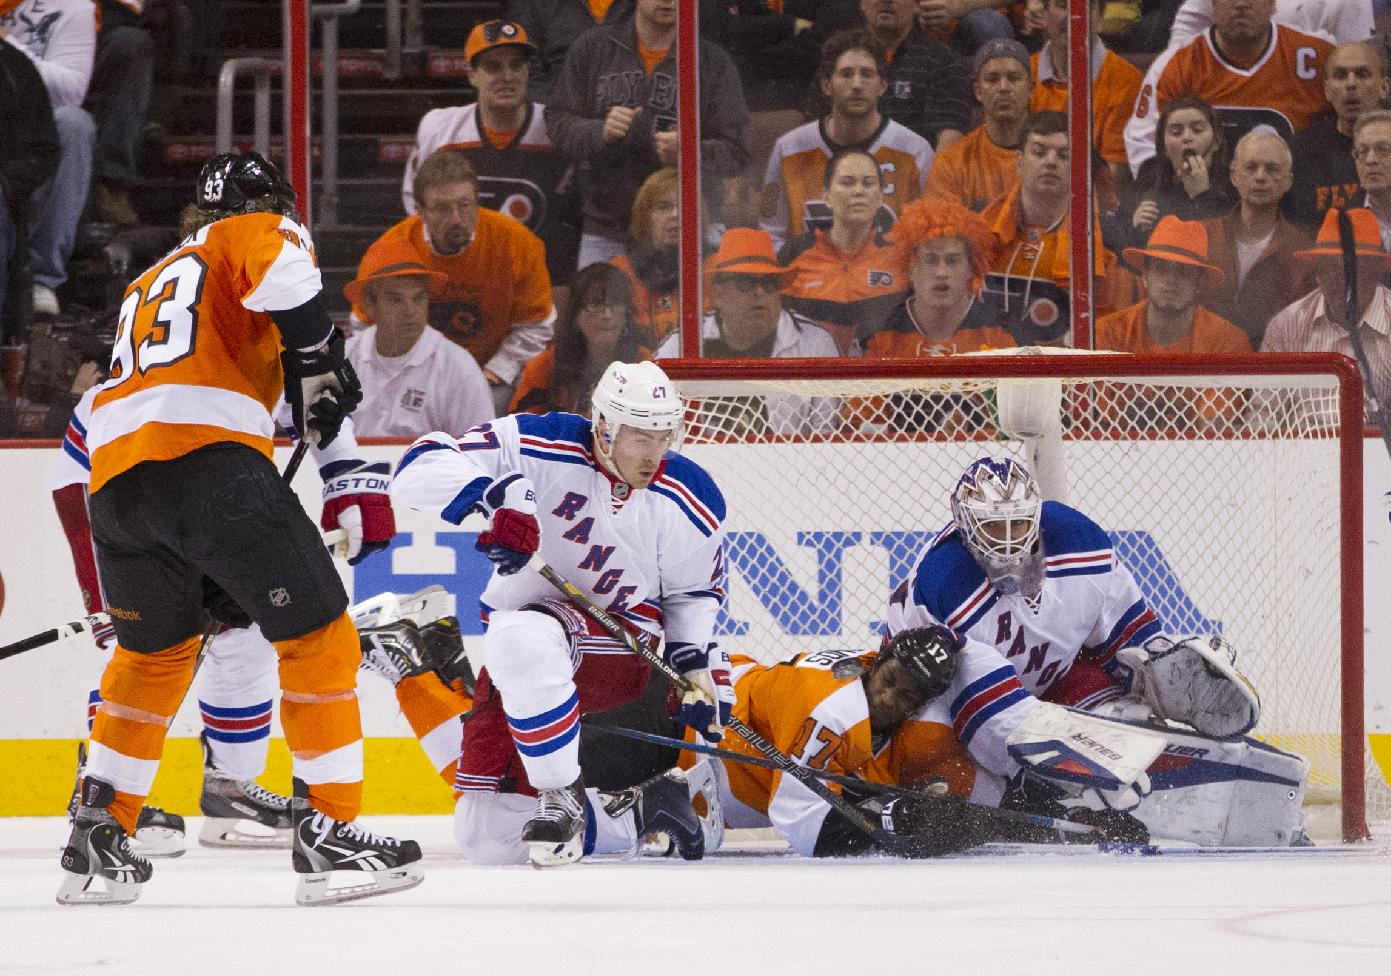 Flyers lack punch at home on power play